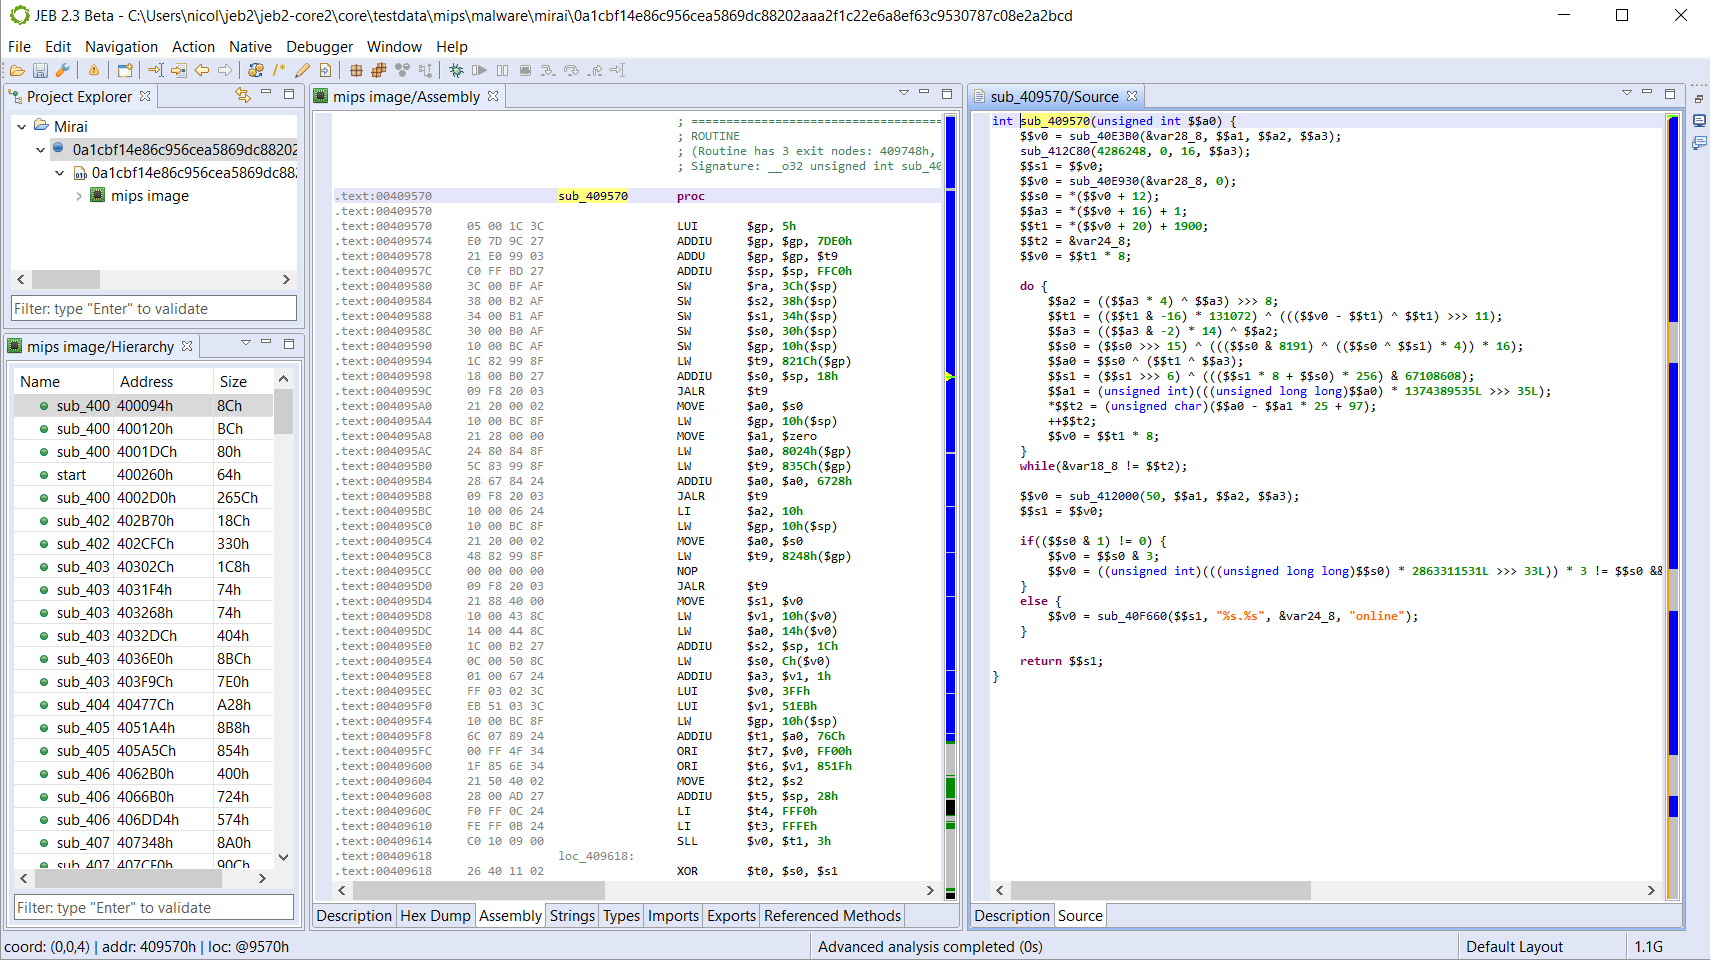 Decompilation – JEB Decompiler in Action